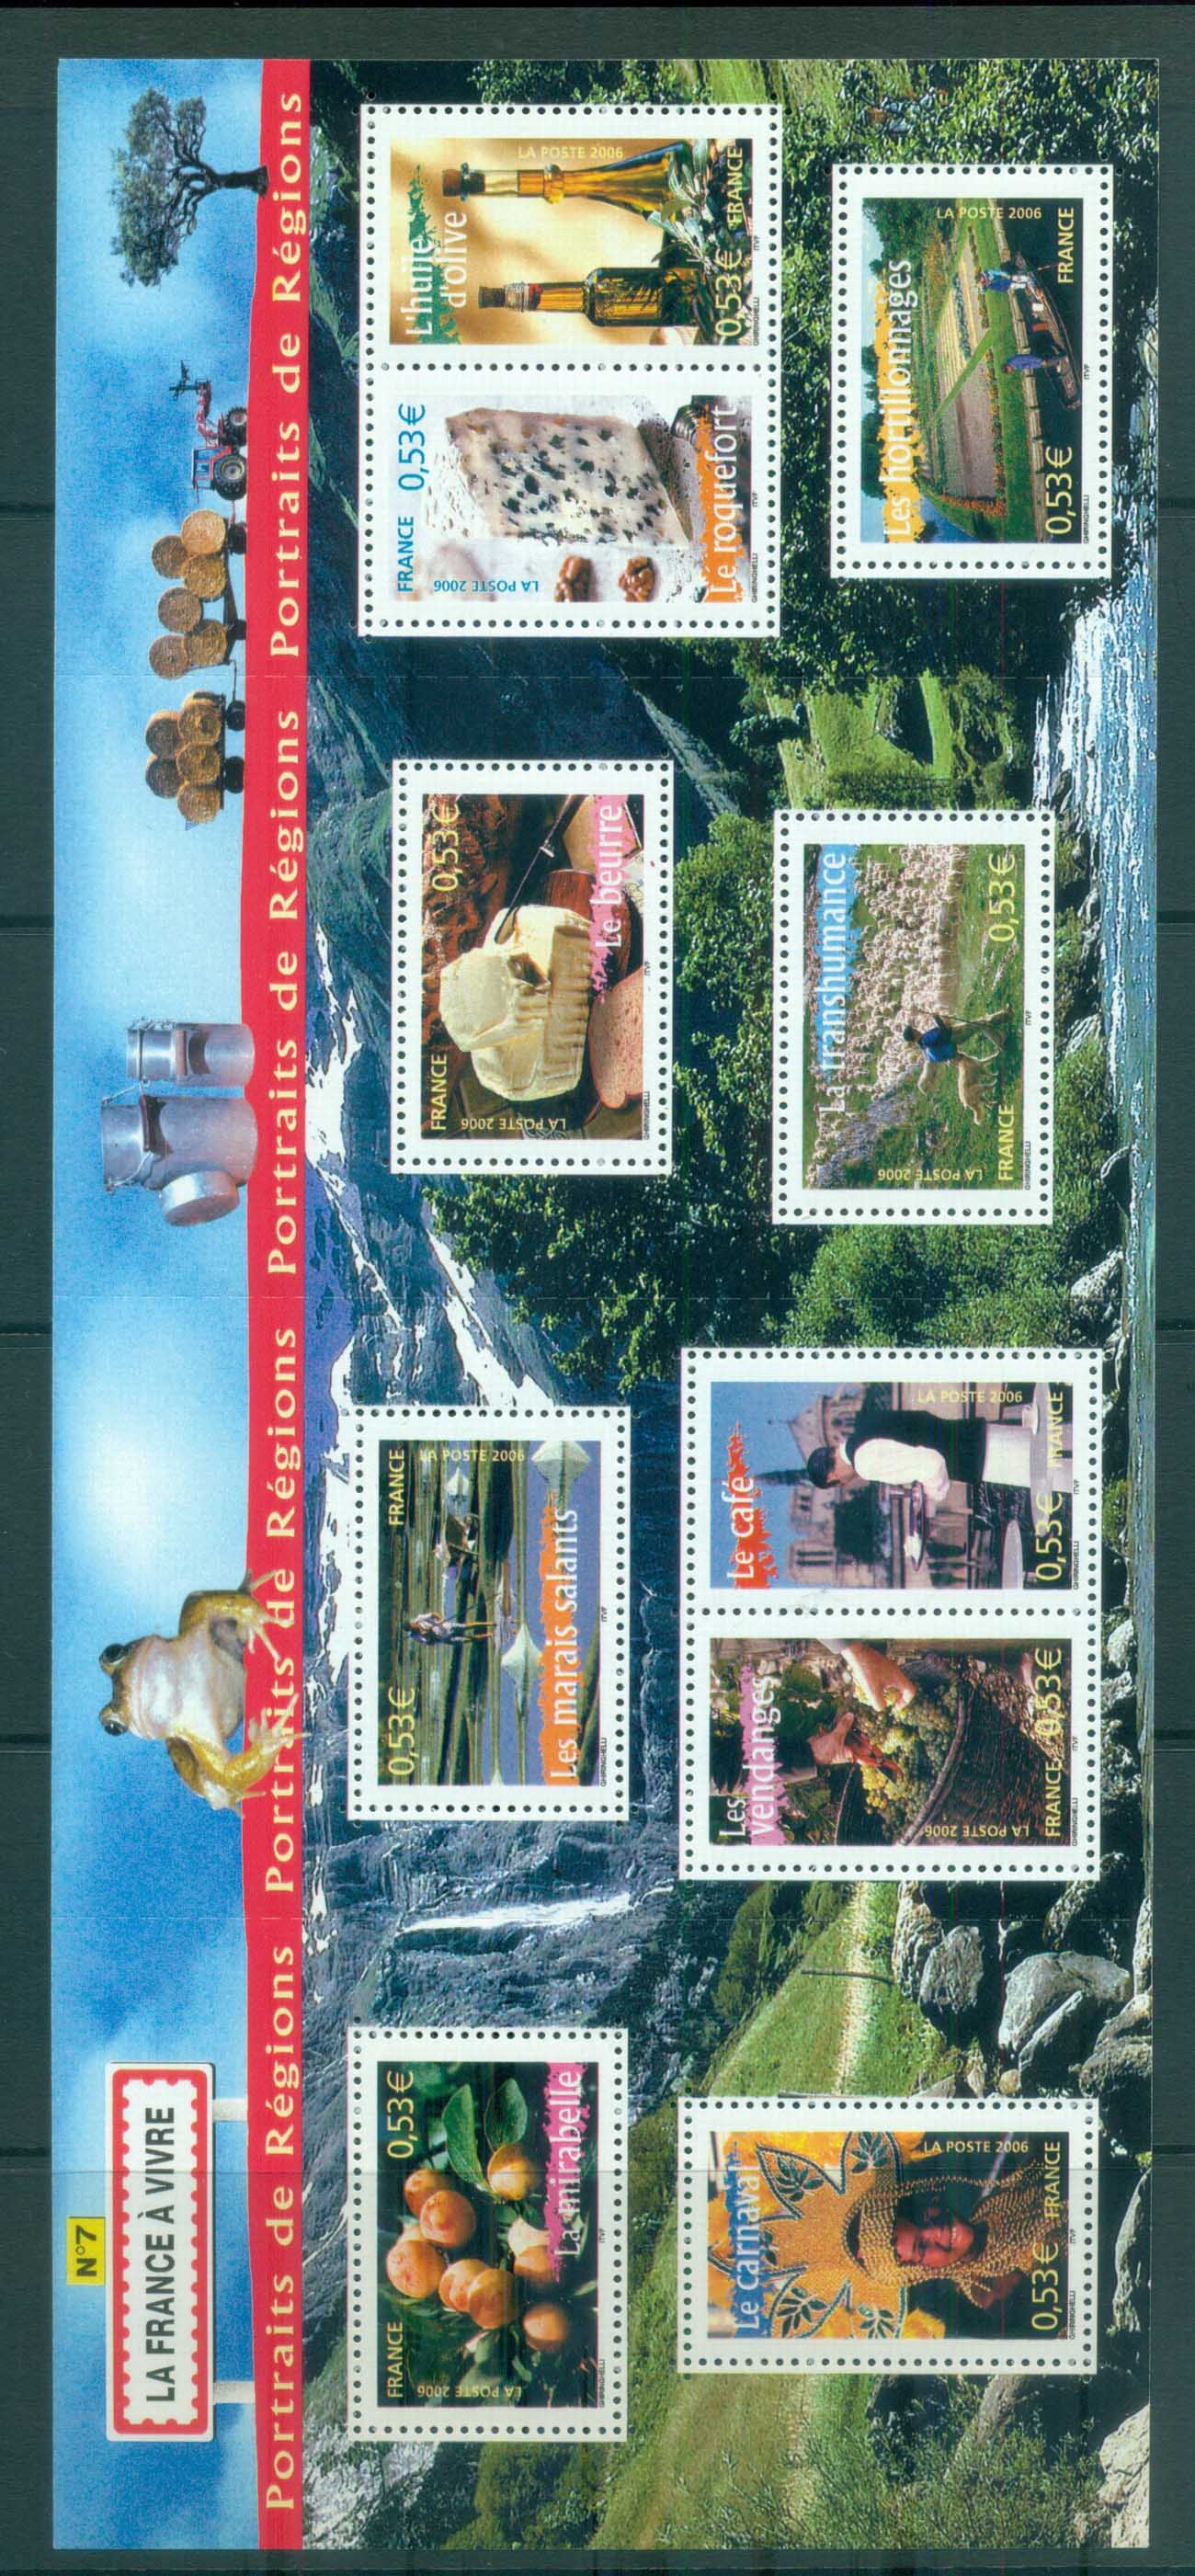 France 2006 Regions #7 MS MUH lot80149